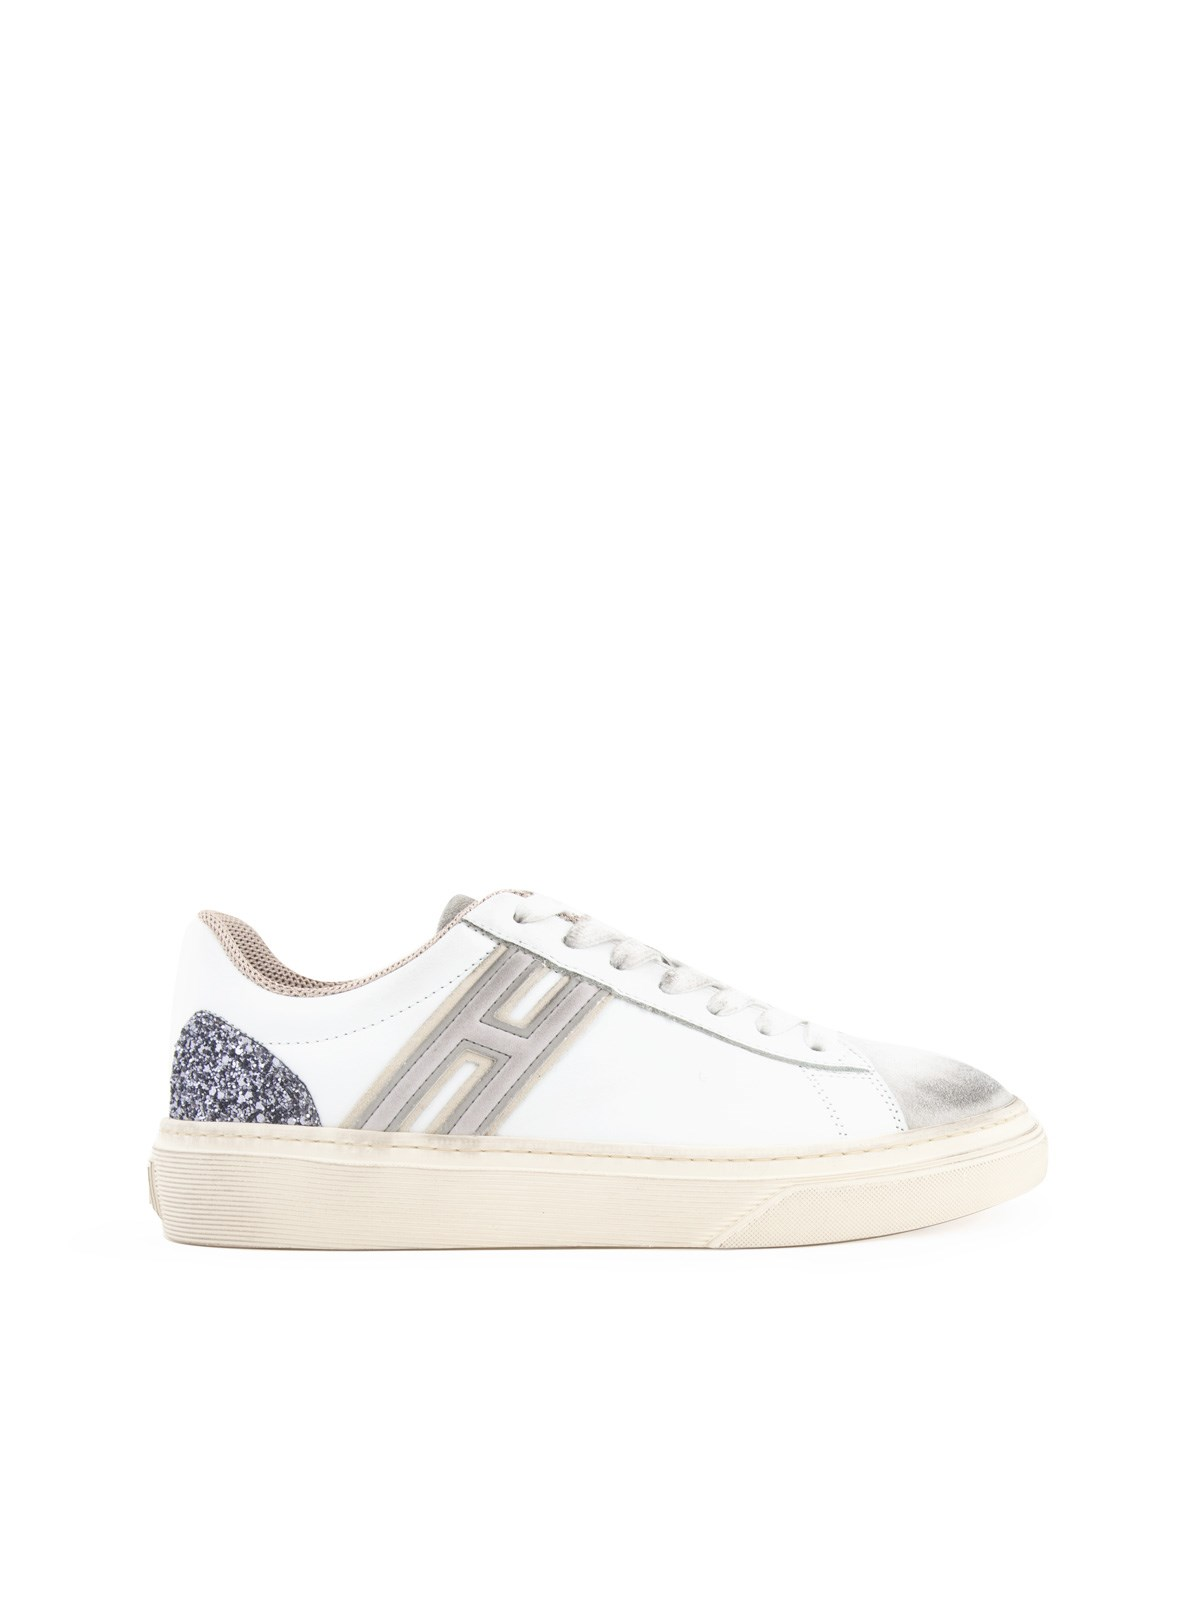 LACE-UP SNEAKERS WITH GLITTER DETAIL